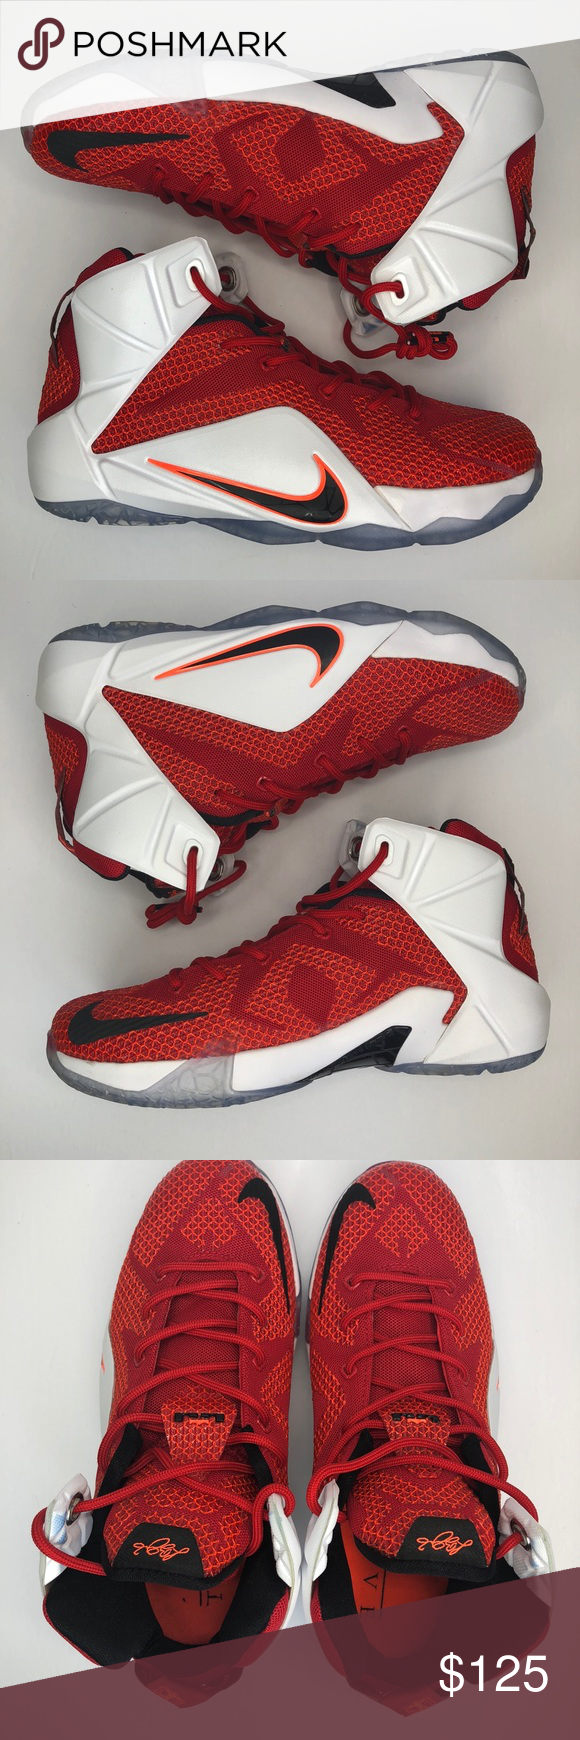 hot sale online 0d4ec aee06 Nike Lebron XII (12) Lion Heart size  6.5 kids Nike Lebron XII (12) Lion  Heart Size  6.5 kids Condition  9 10 Worn 3x Comes with original box 100%  Authentic ...